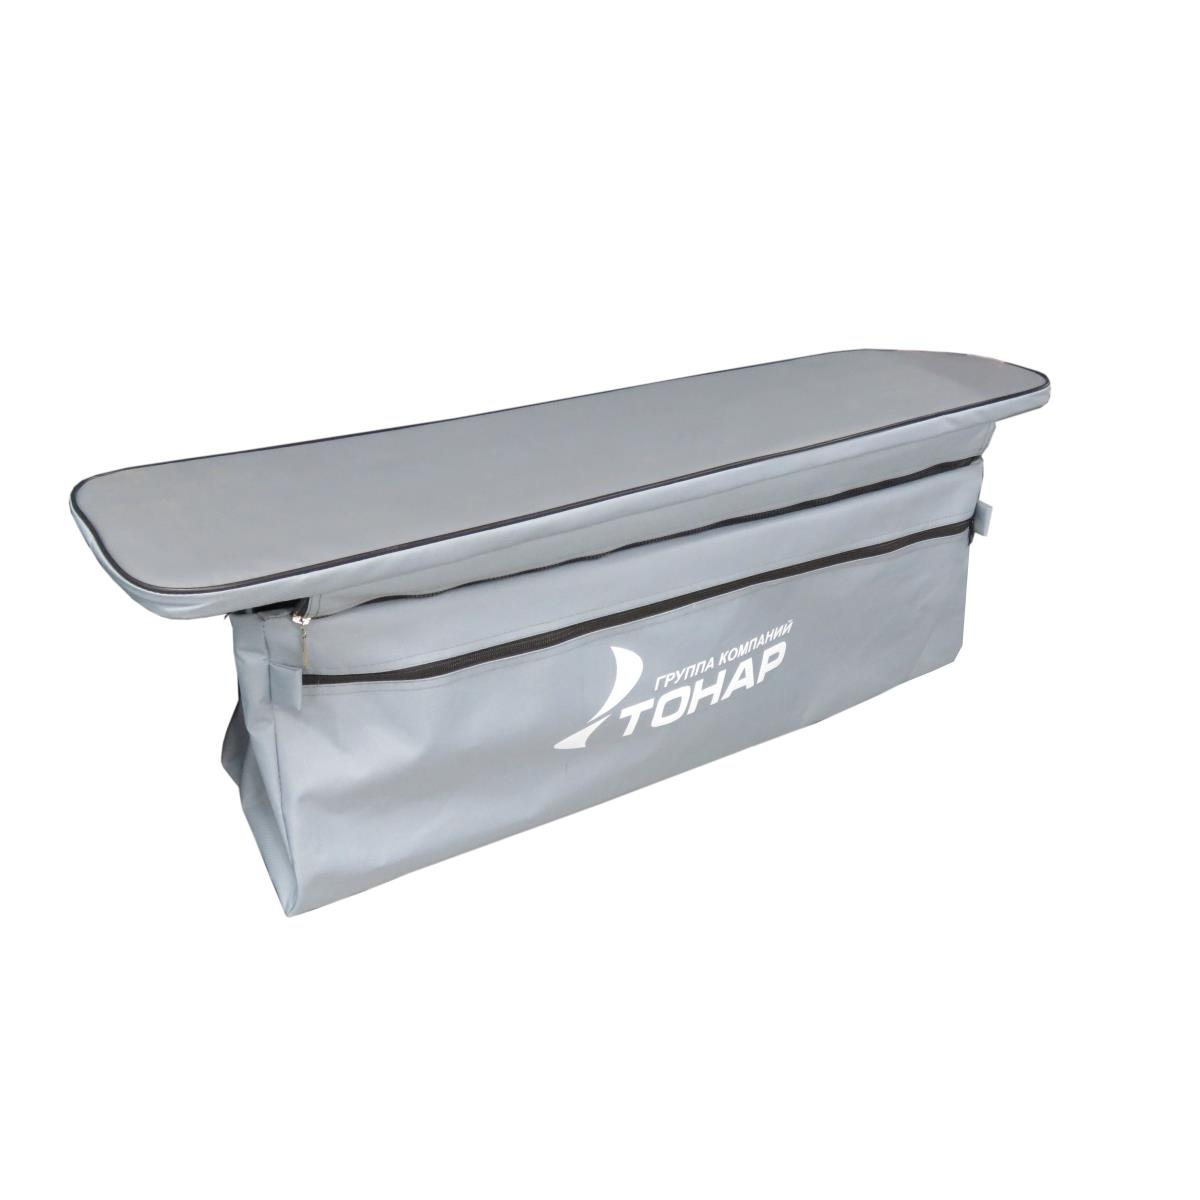 Bag Under The Seat For Boat (length 82 Cm, Gray)